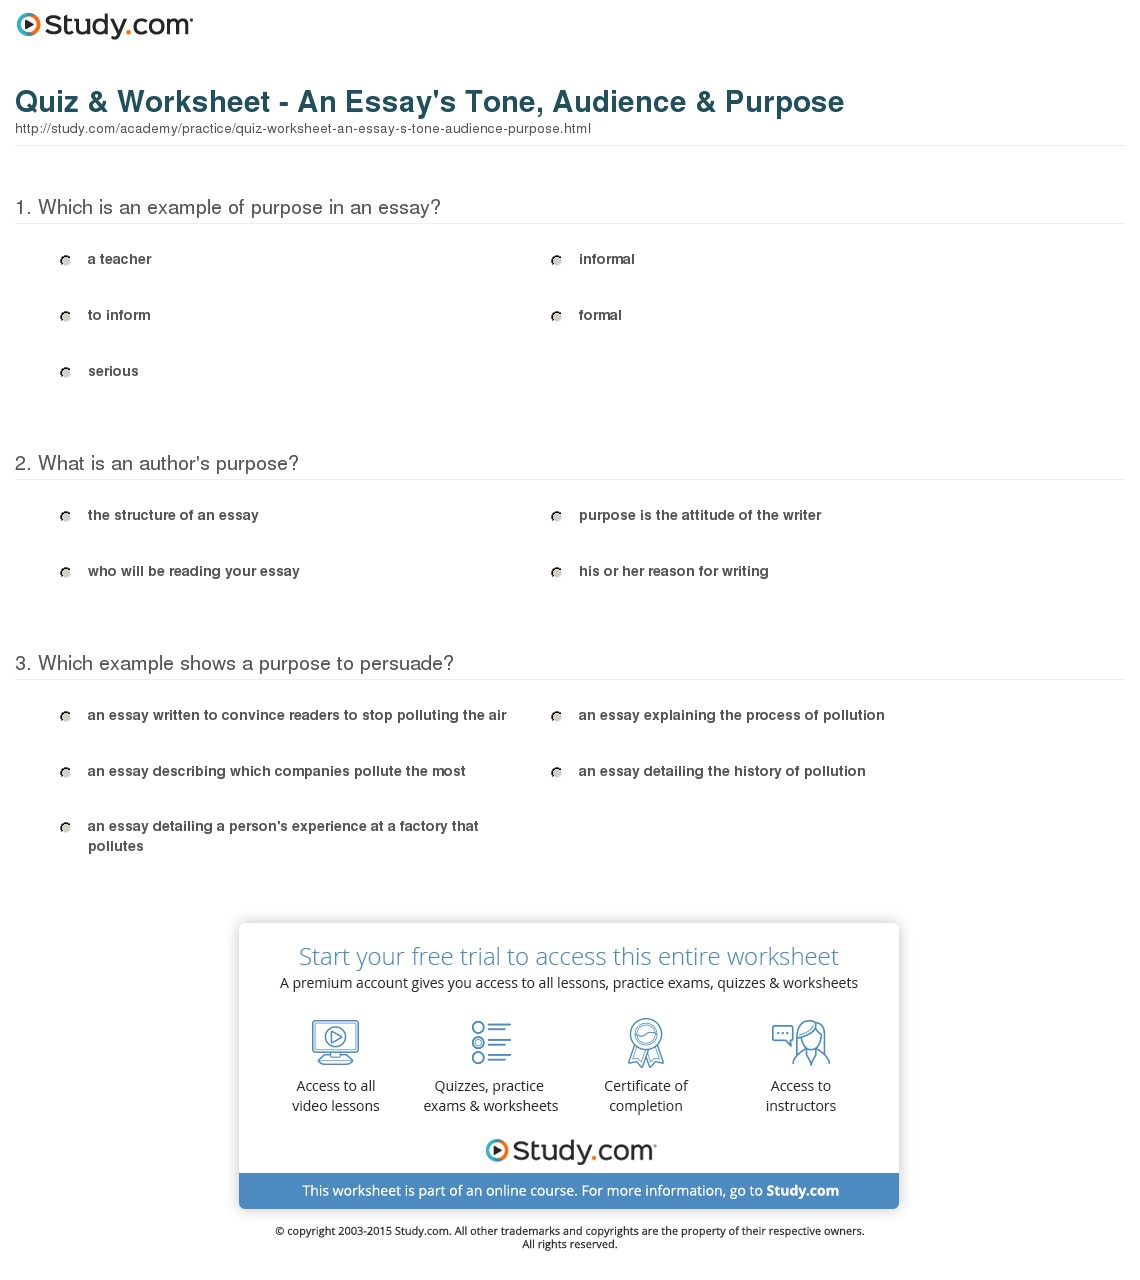 009 Quiz Worksheet An Essay S Tone Audience Purpose Example Striking Of Expository Outline For Argumentative Full